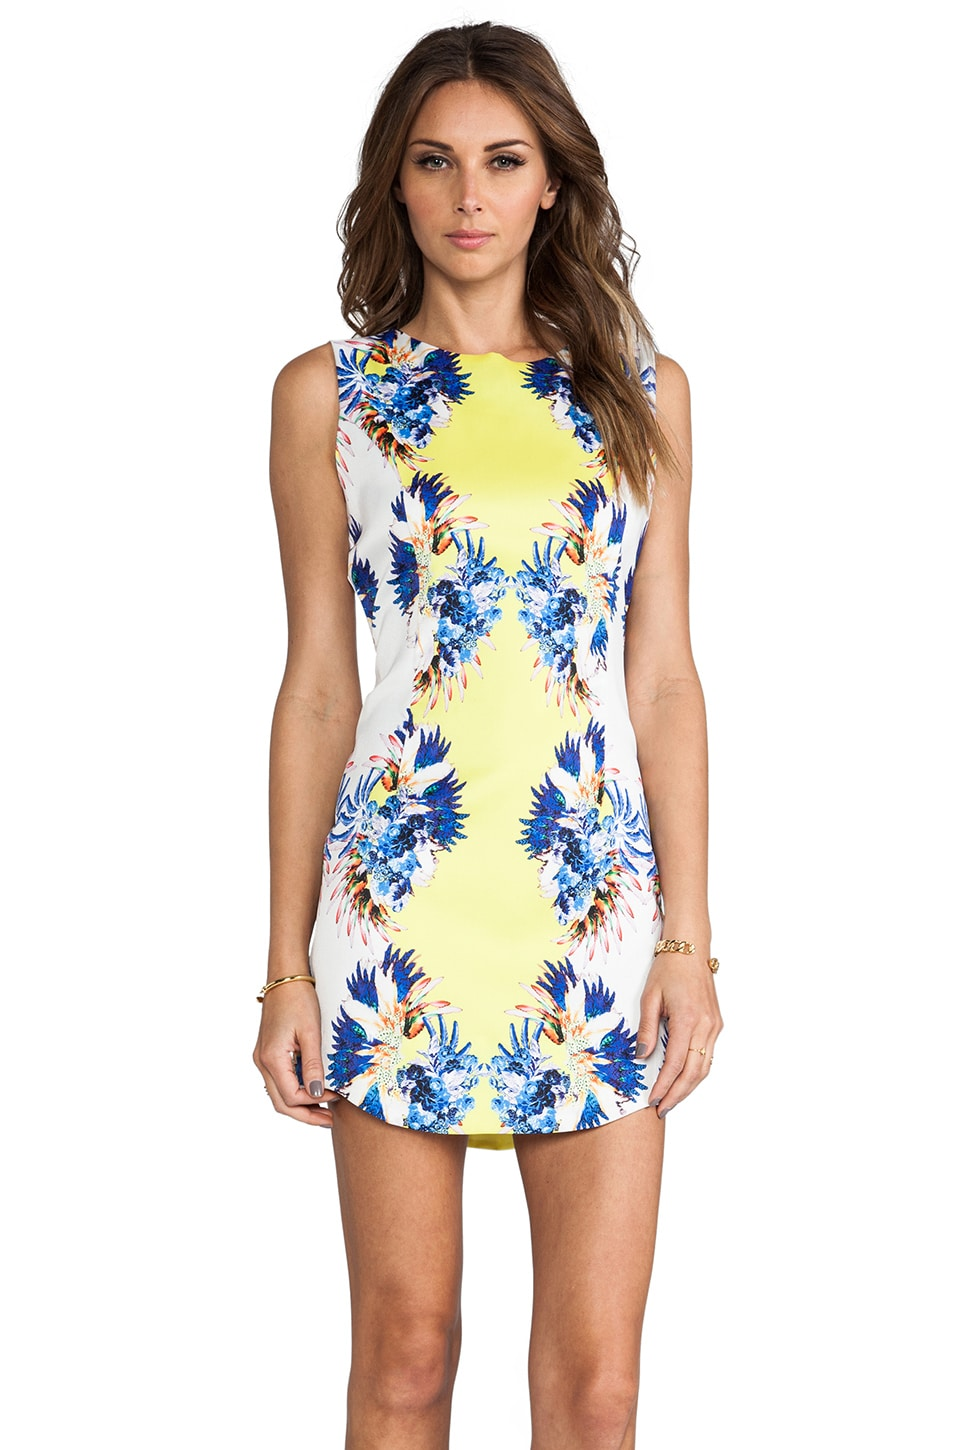 BLAQUE LABEL Floral Print Dress in Yellow